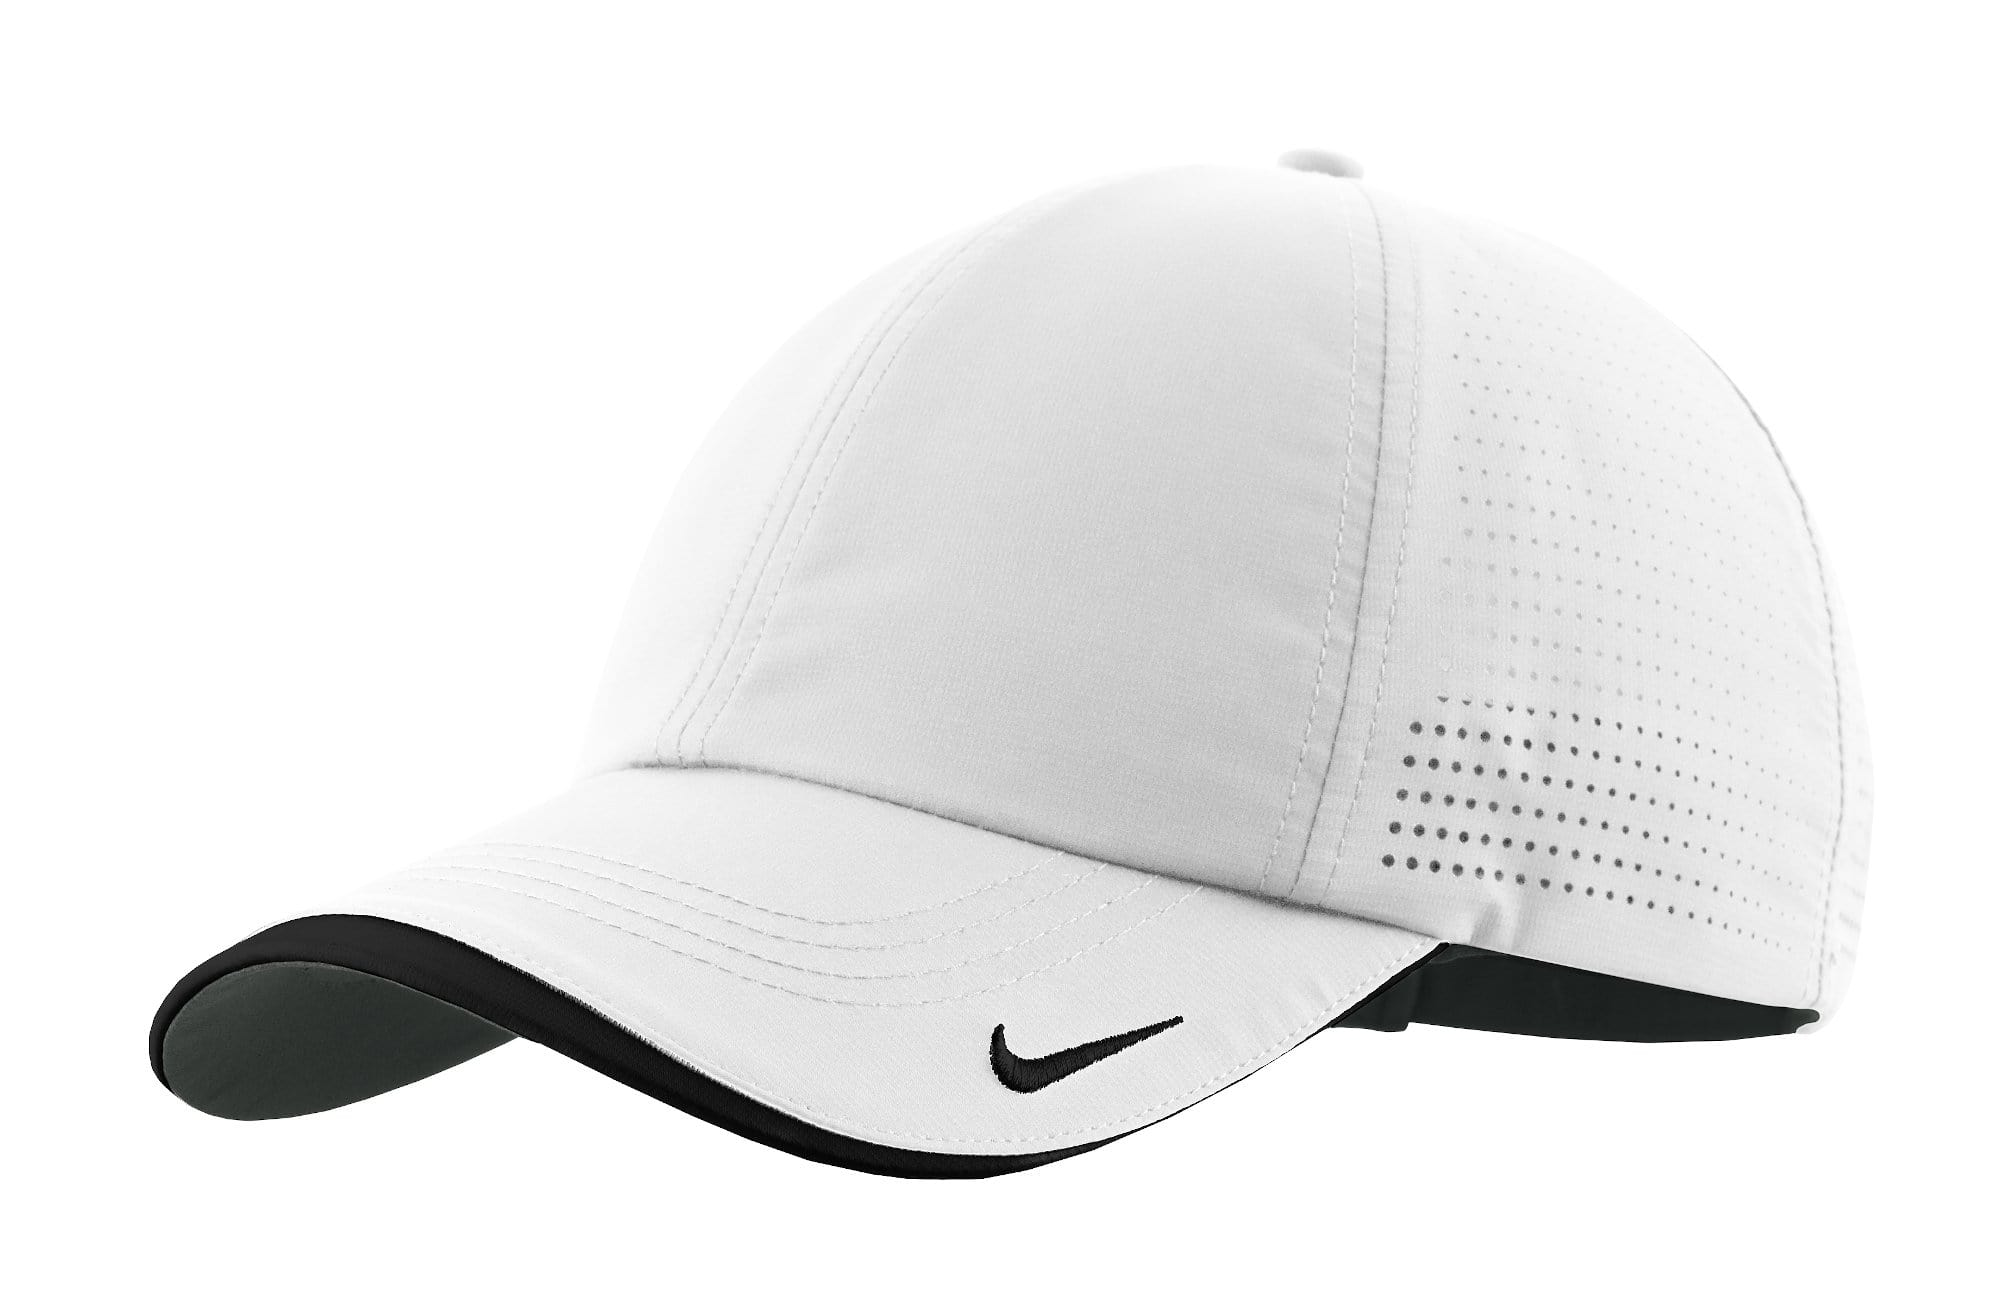 Nike Headwear ONE SIZE / WHITE Nike - Dri-FIT Swoosh Perforated Cap